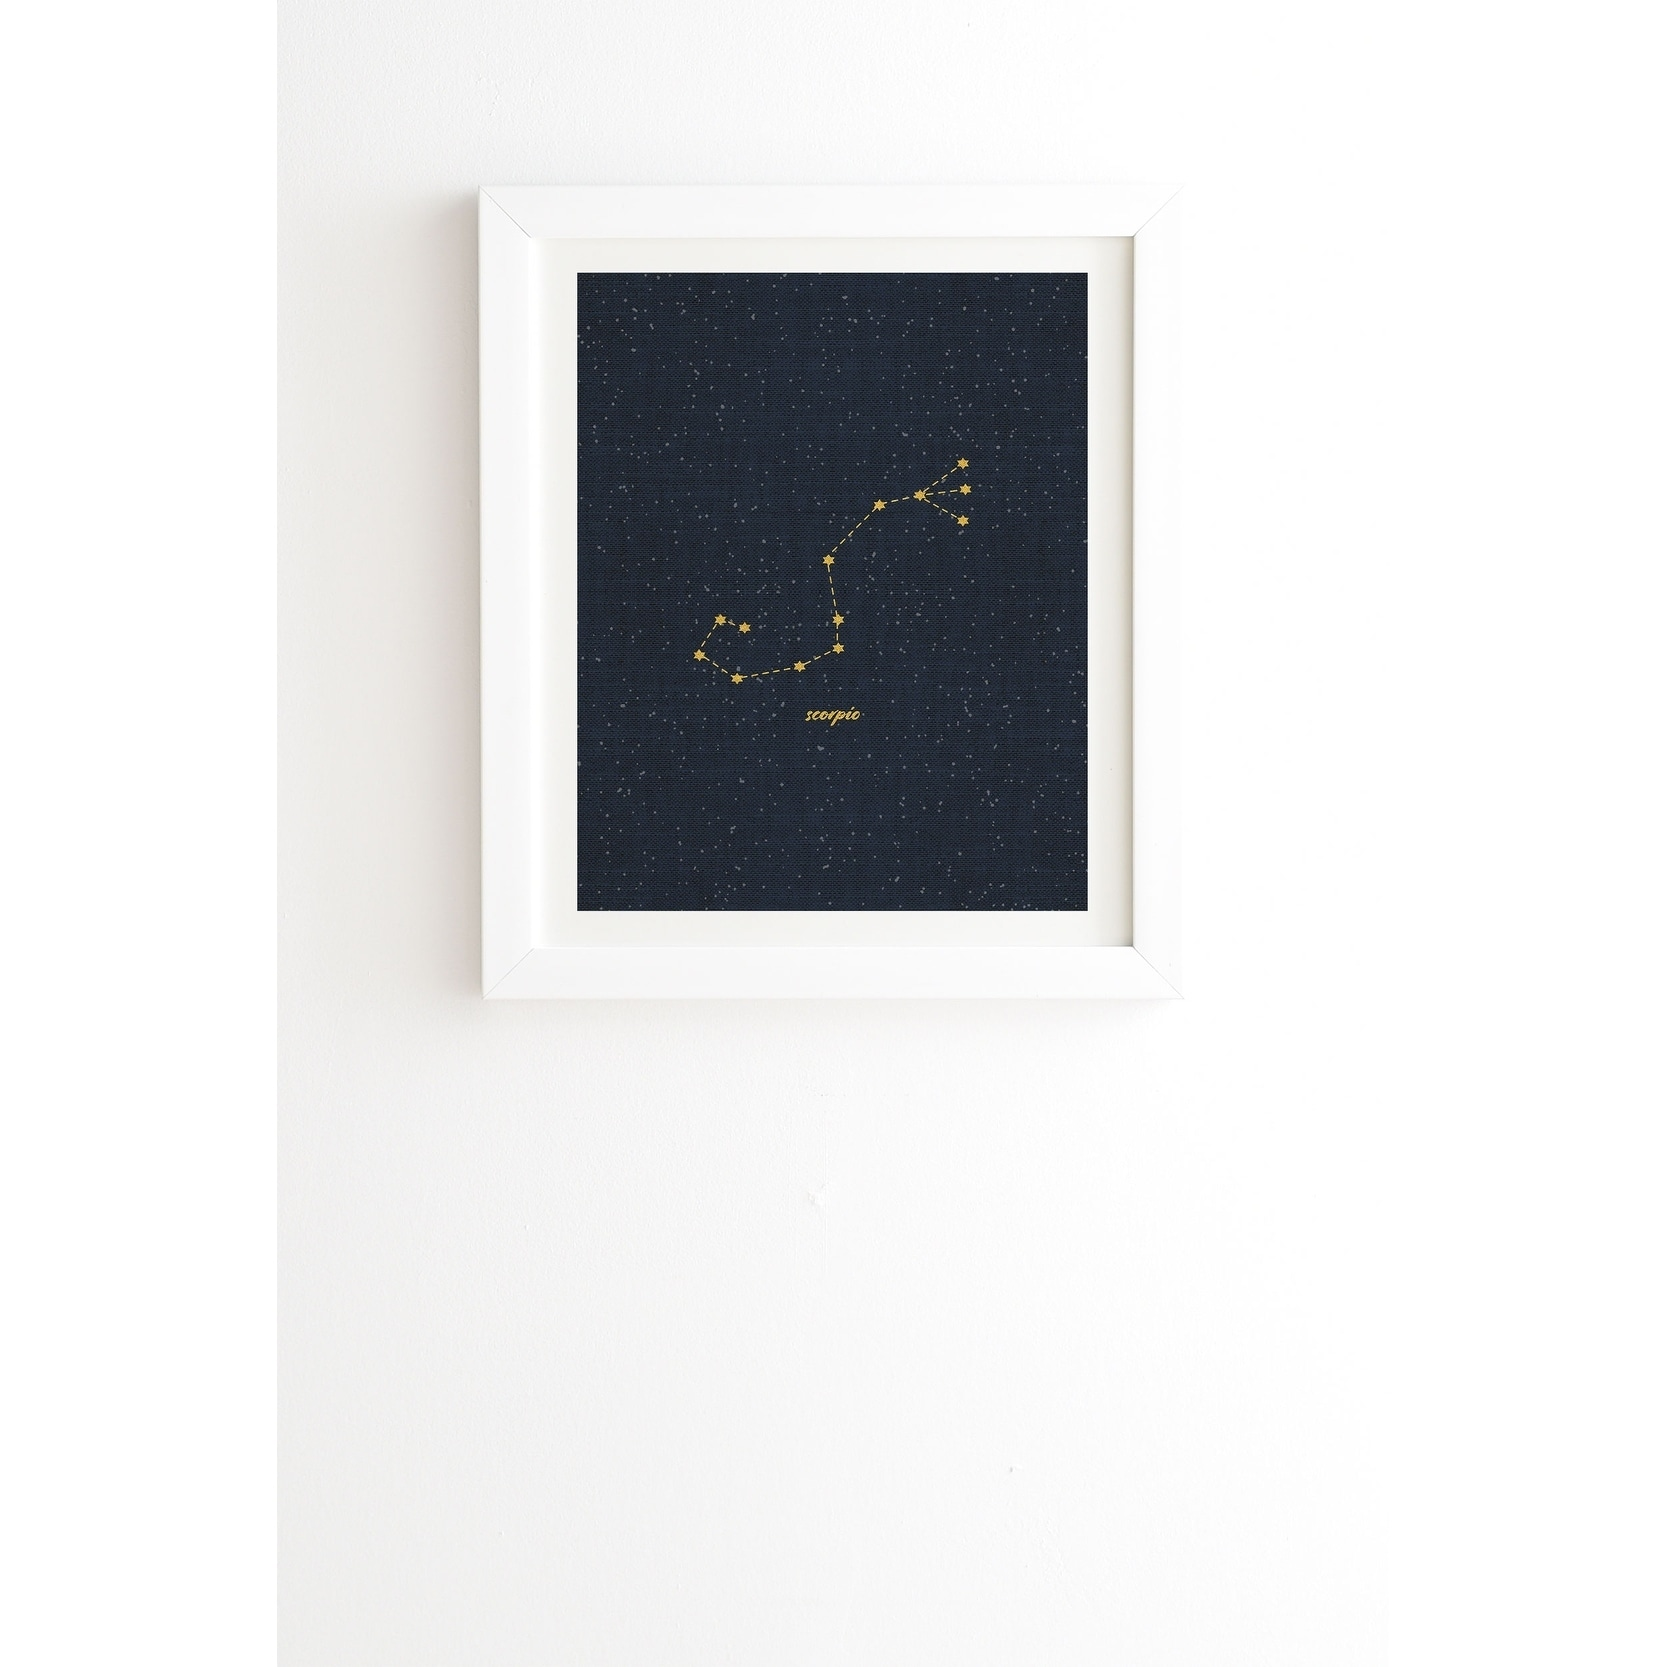 Deny Designs Constellation Aquarius Framed Wall Art (3 Frame Colors) -  Blue/Yellow